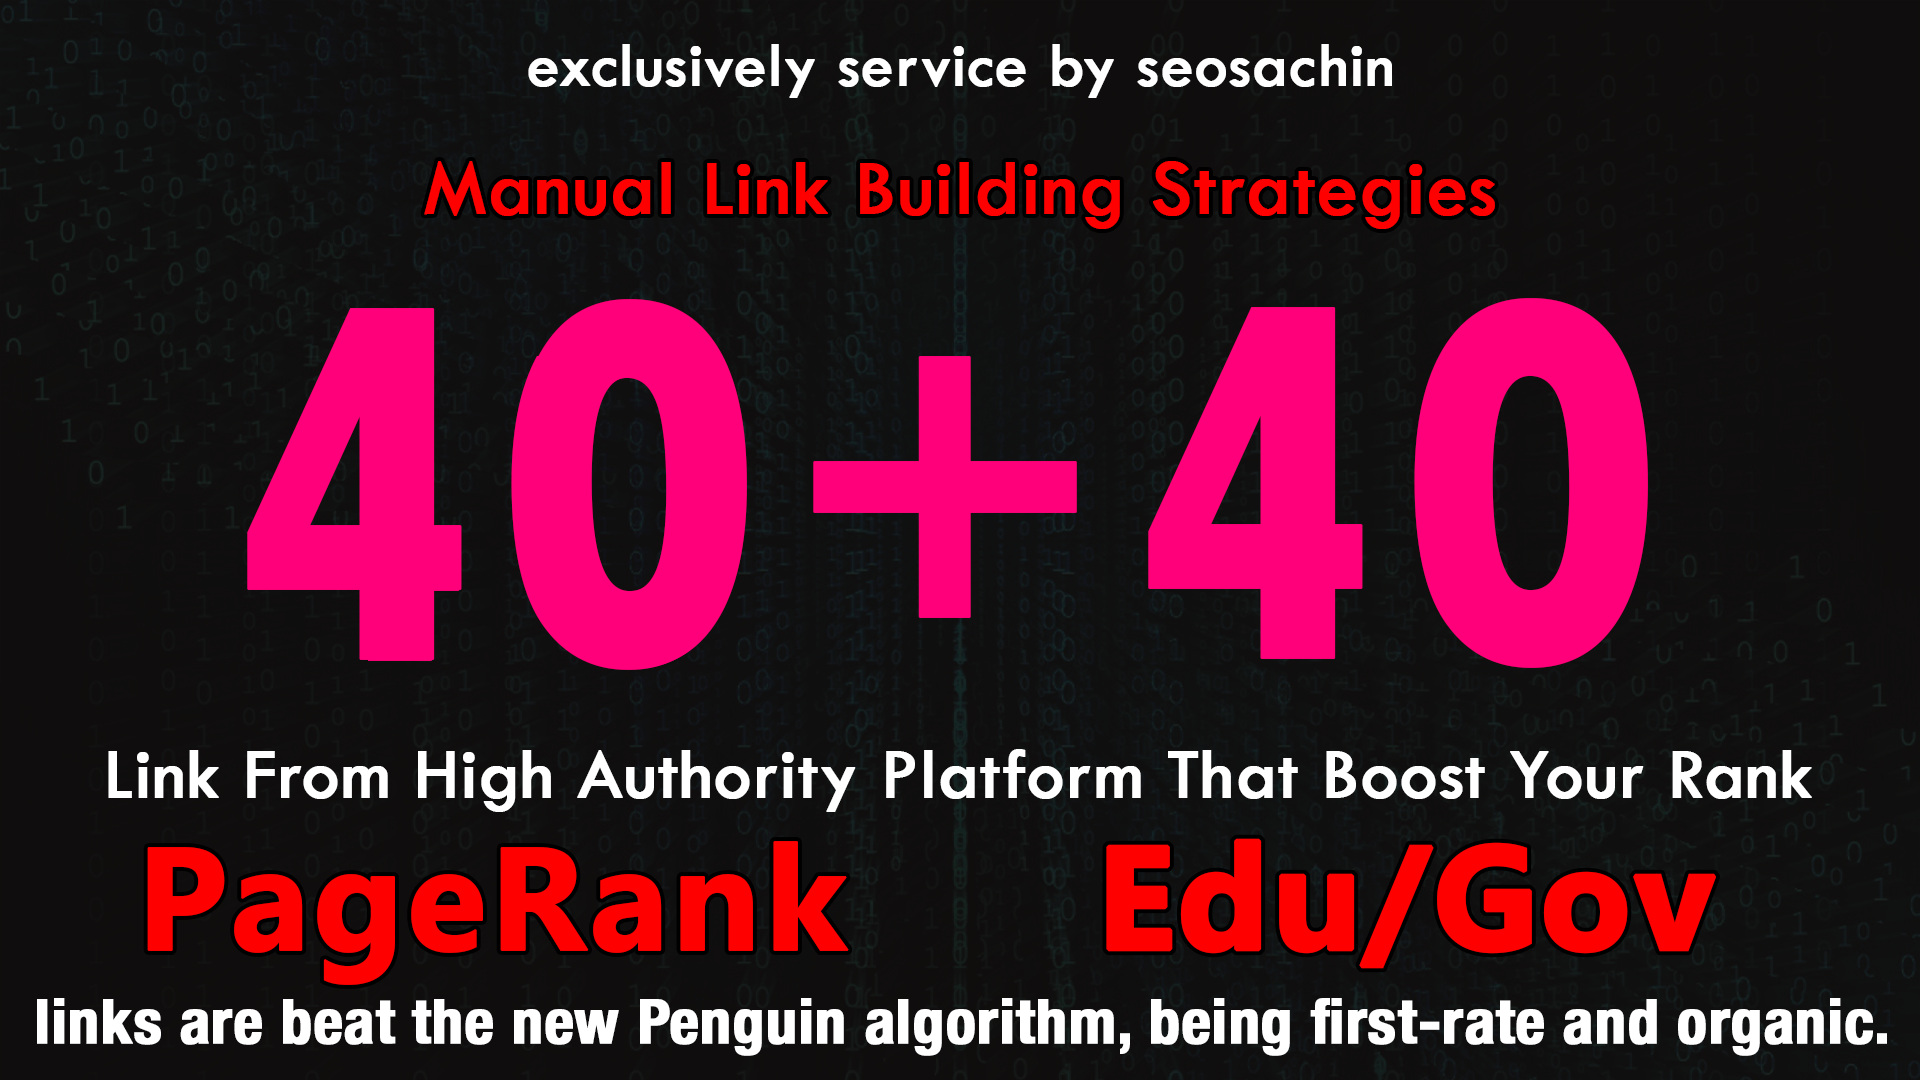 Skyrocket Your Google Rankings, With 40 PR9 + 40 EDU GOV Permanent Backlinking